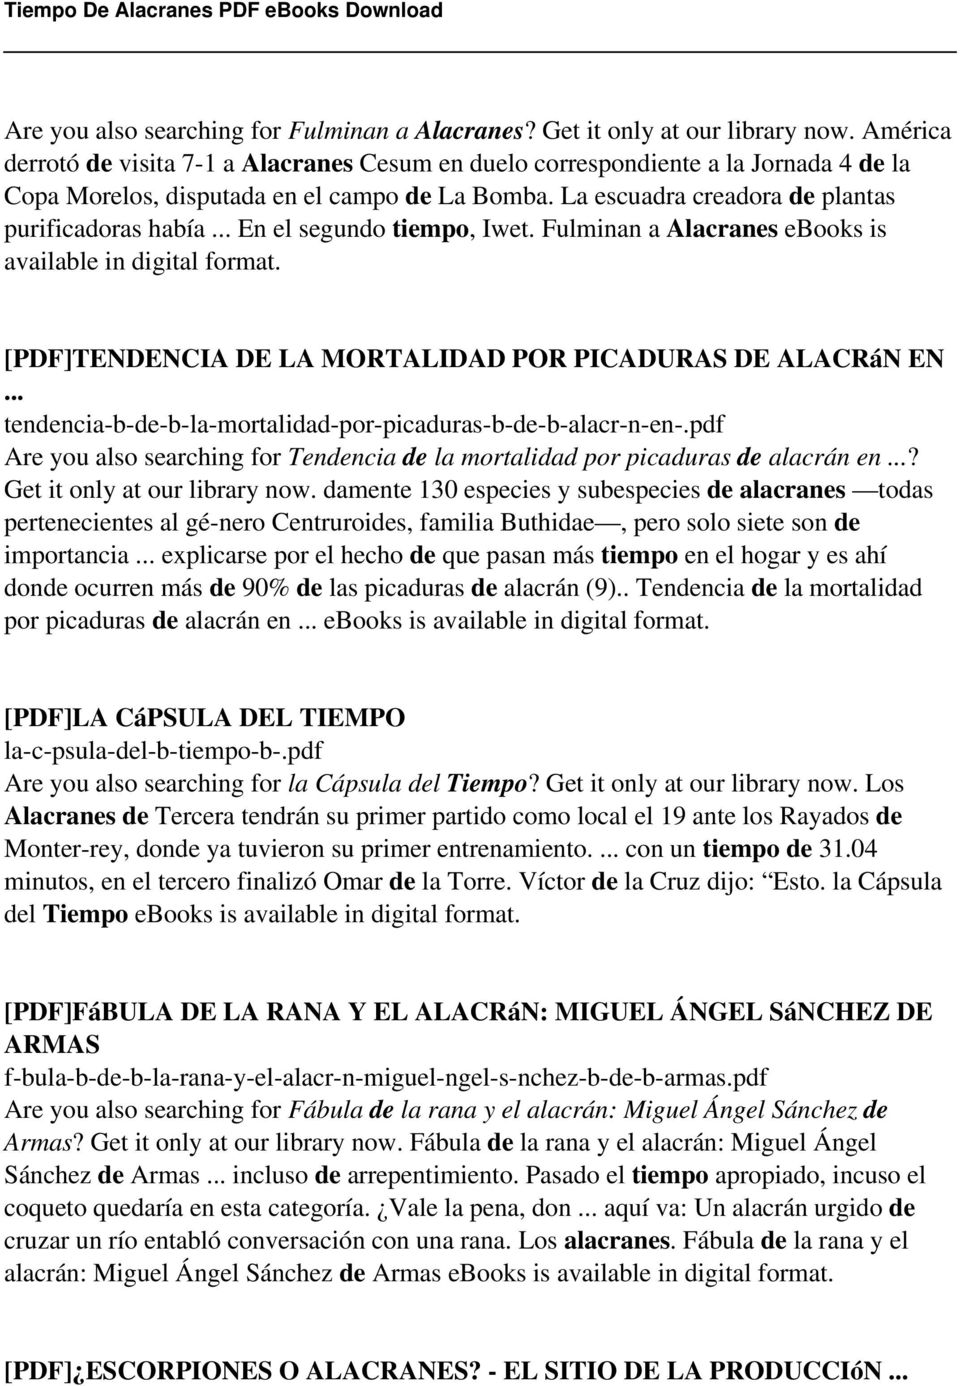 Leccion 4 ebook 80 off choice image free ebooks and more tiempo de alacranes pdf pdf fulminan a alacranes ebooks is available in fandeluxe choice image fandeluxe Image collections